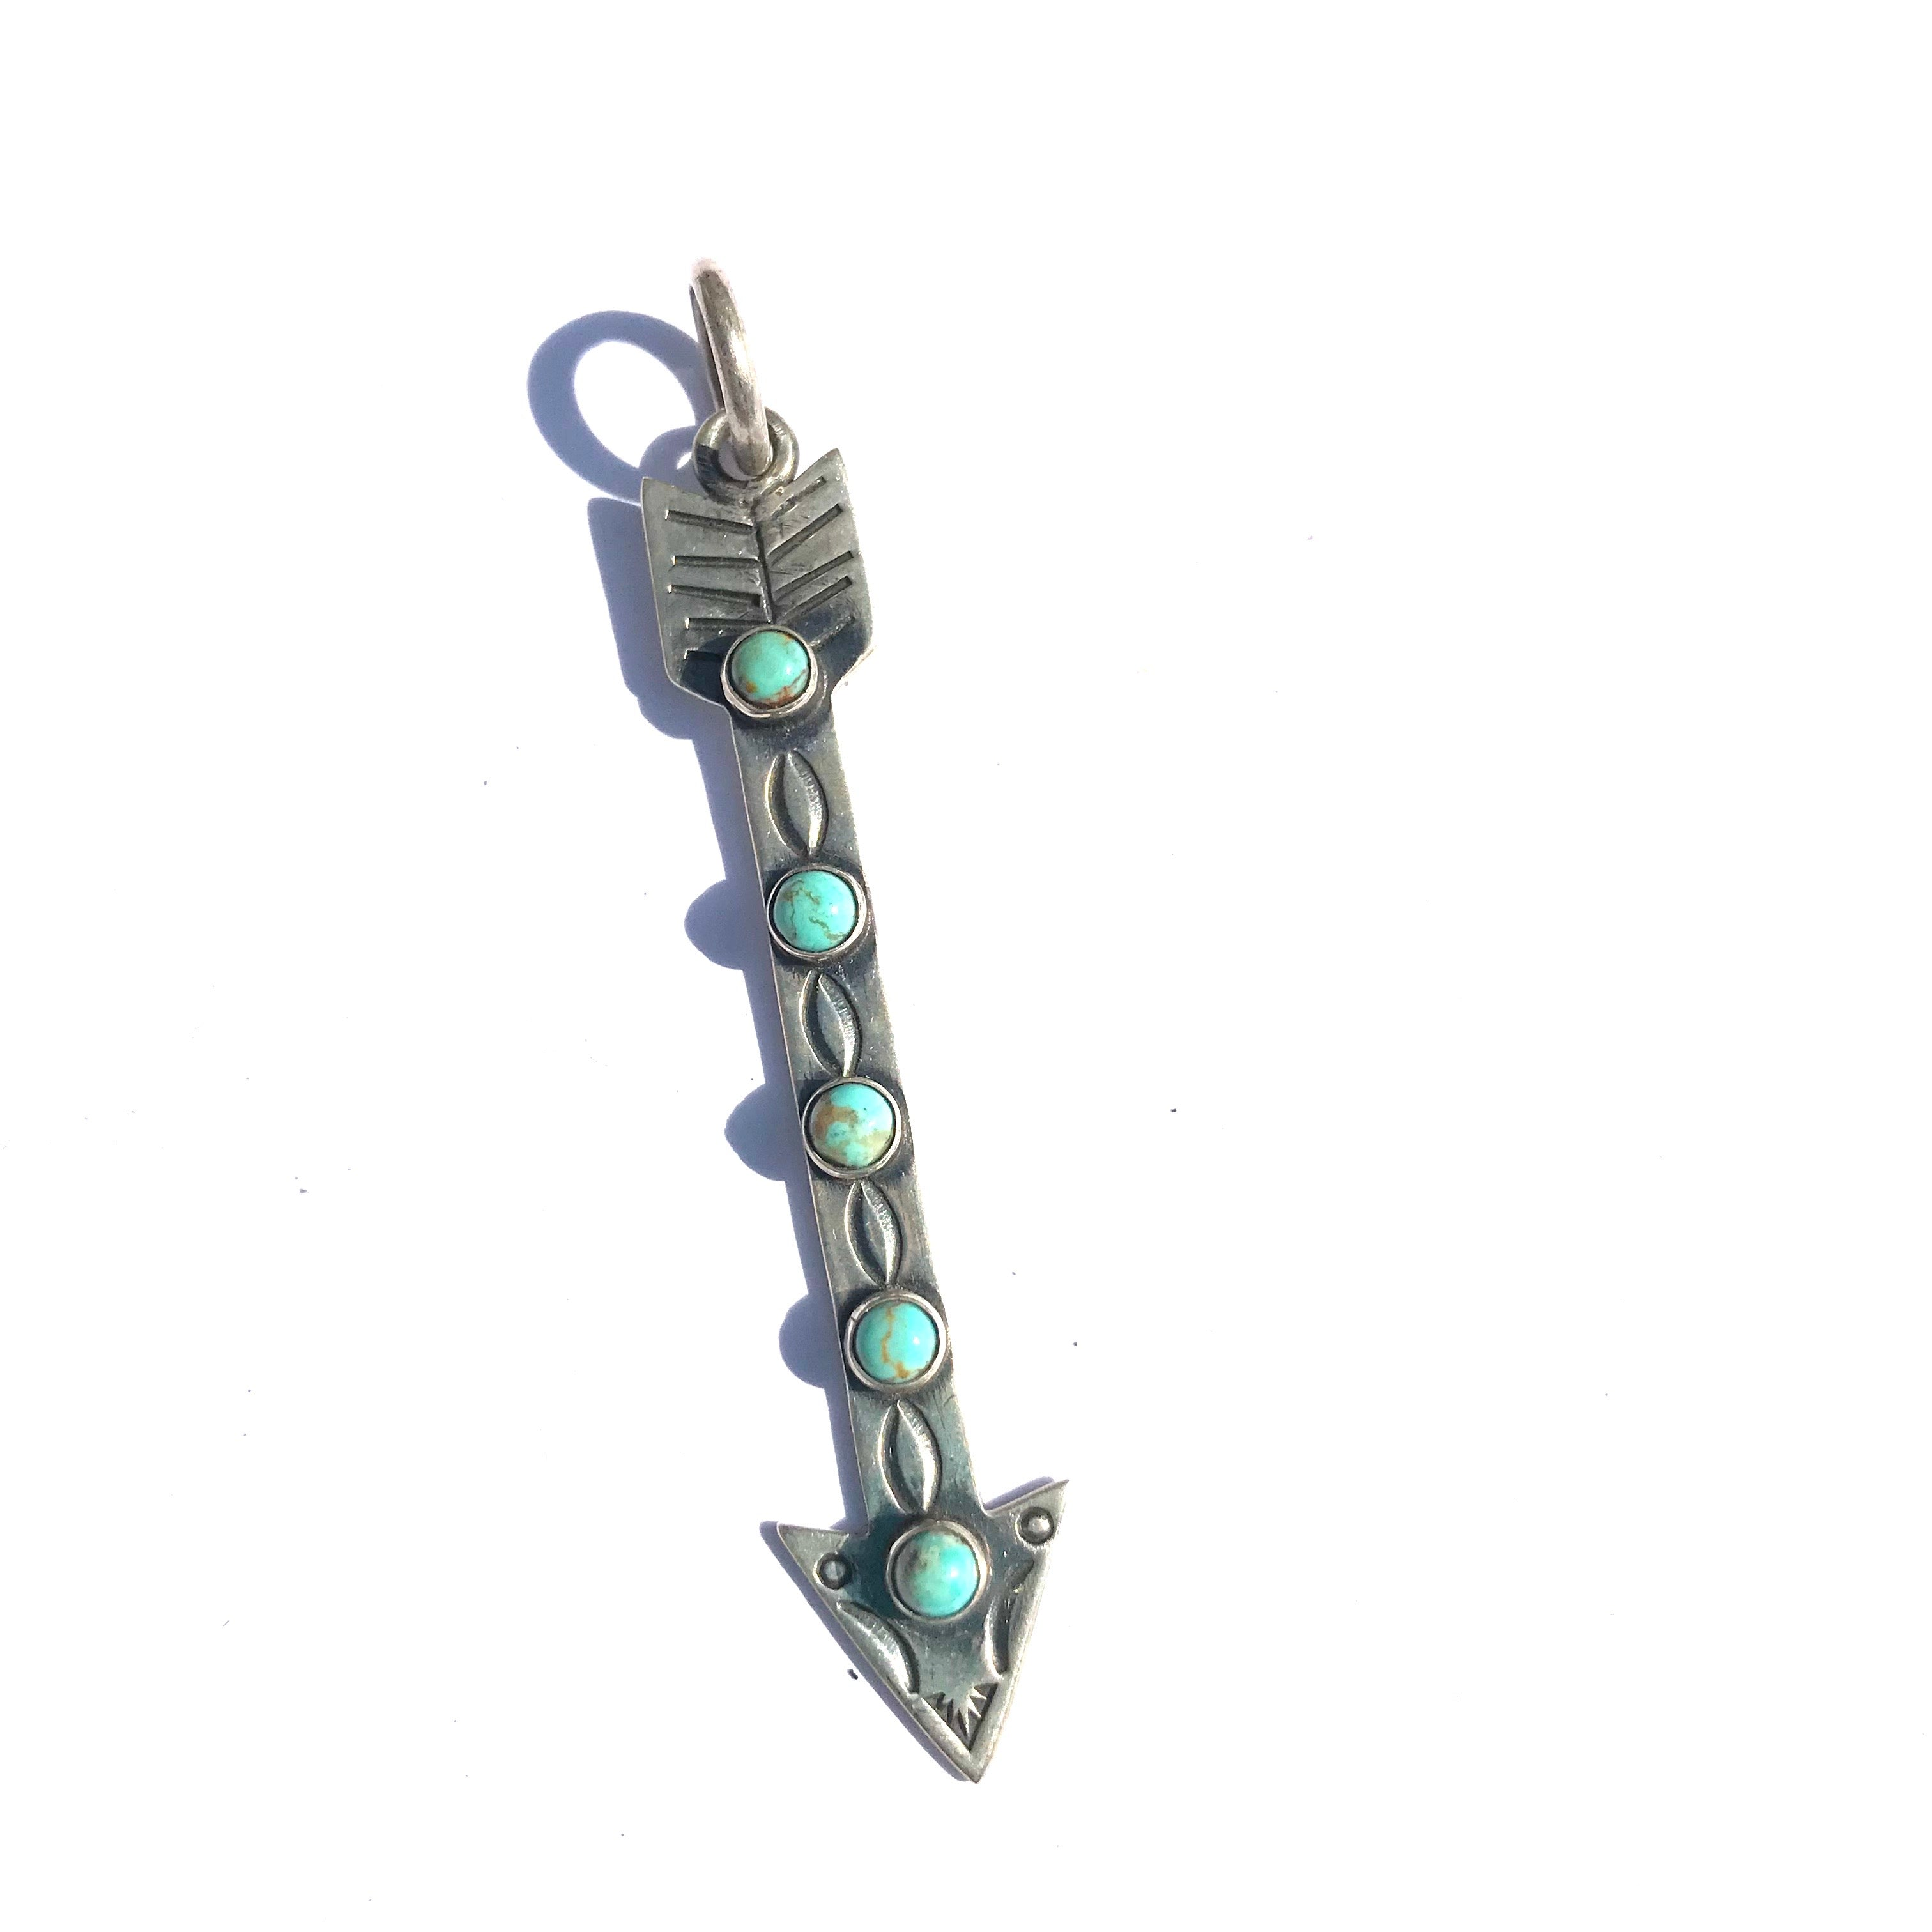 Arrow charm with turquoise sterling silver